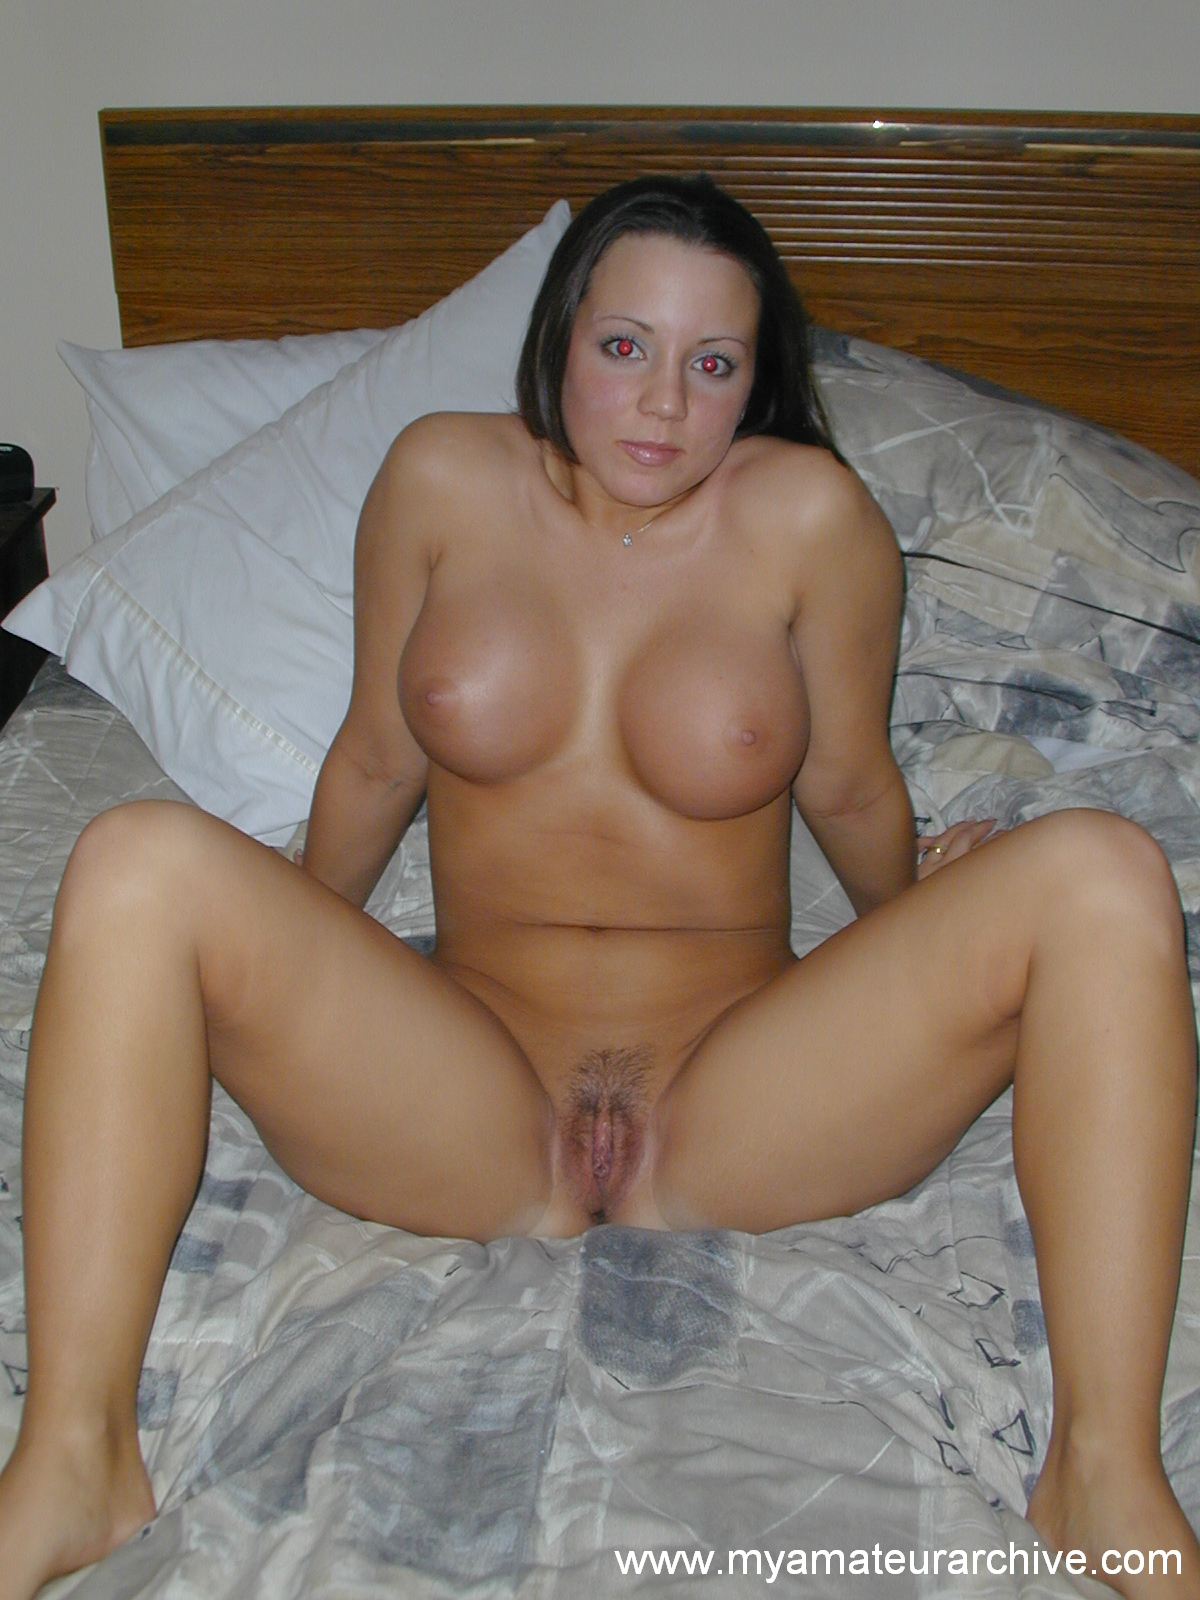 Naked amateur woman